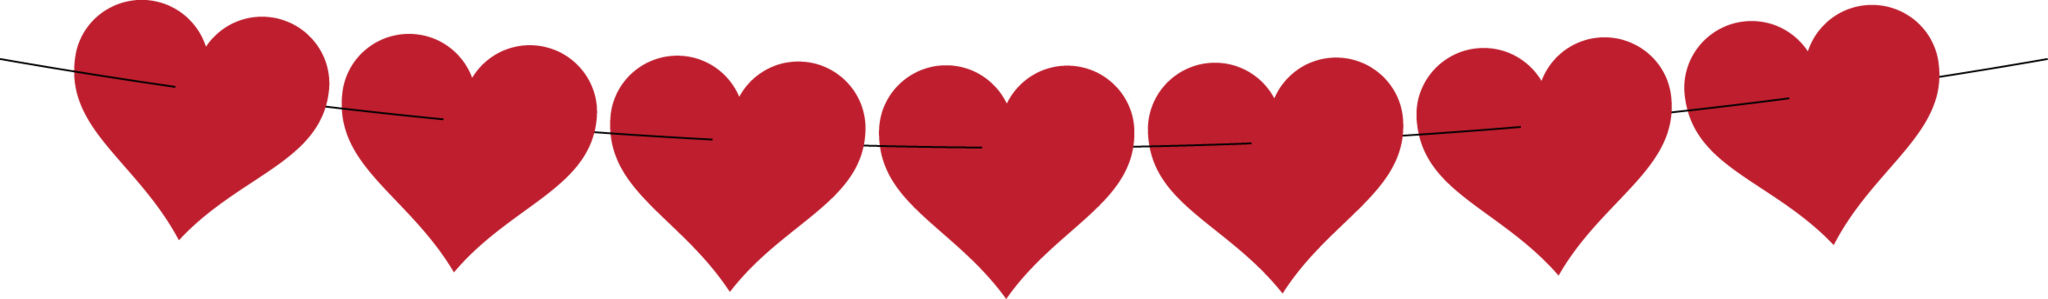 Clip art real and. Clipart heart banner